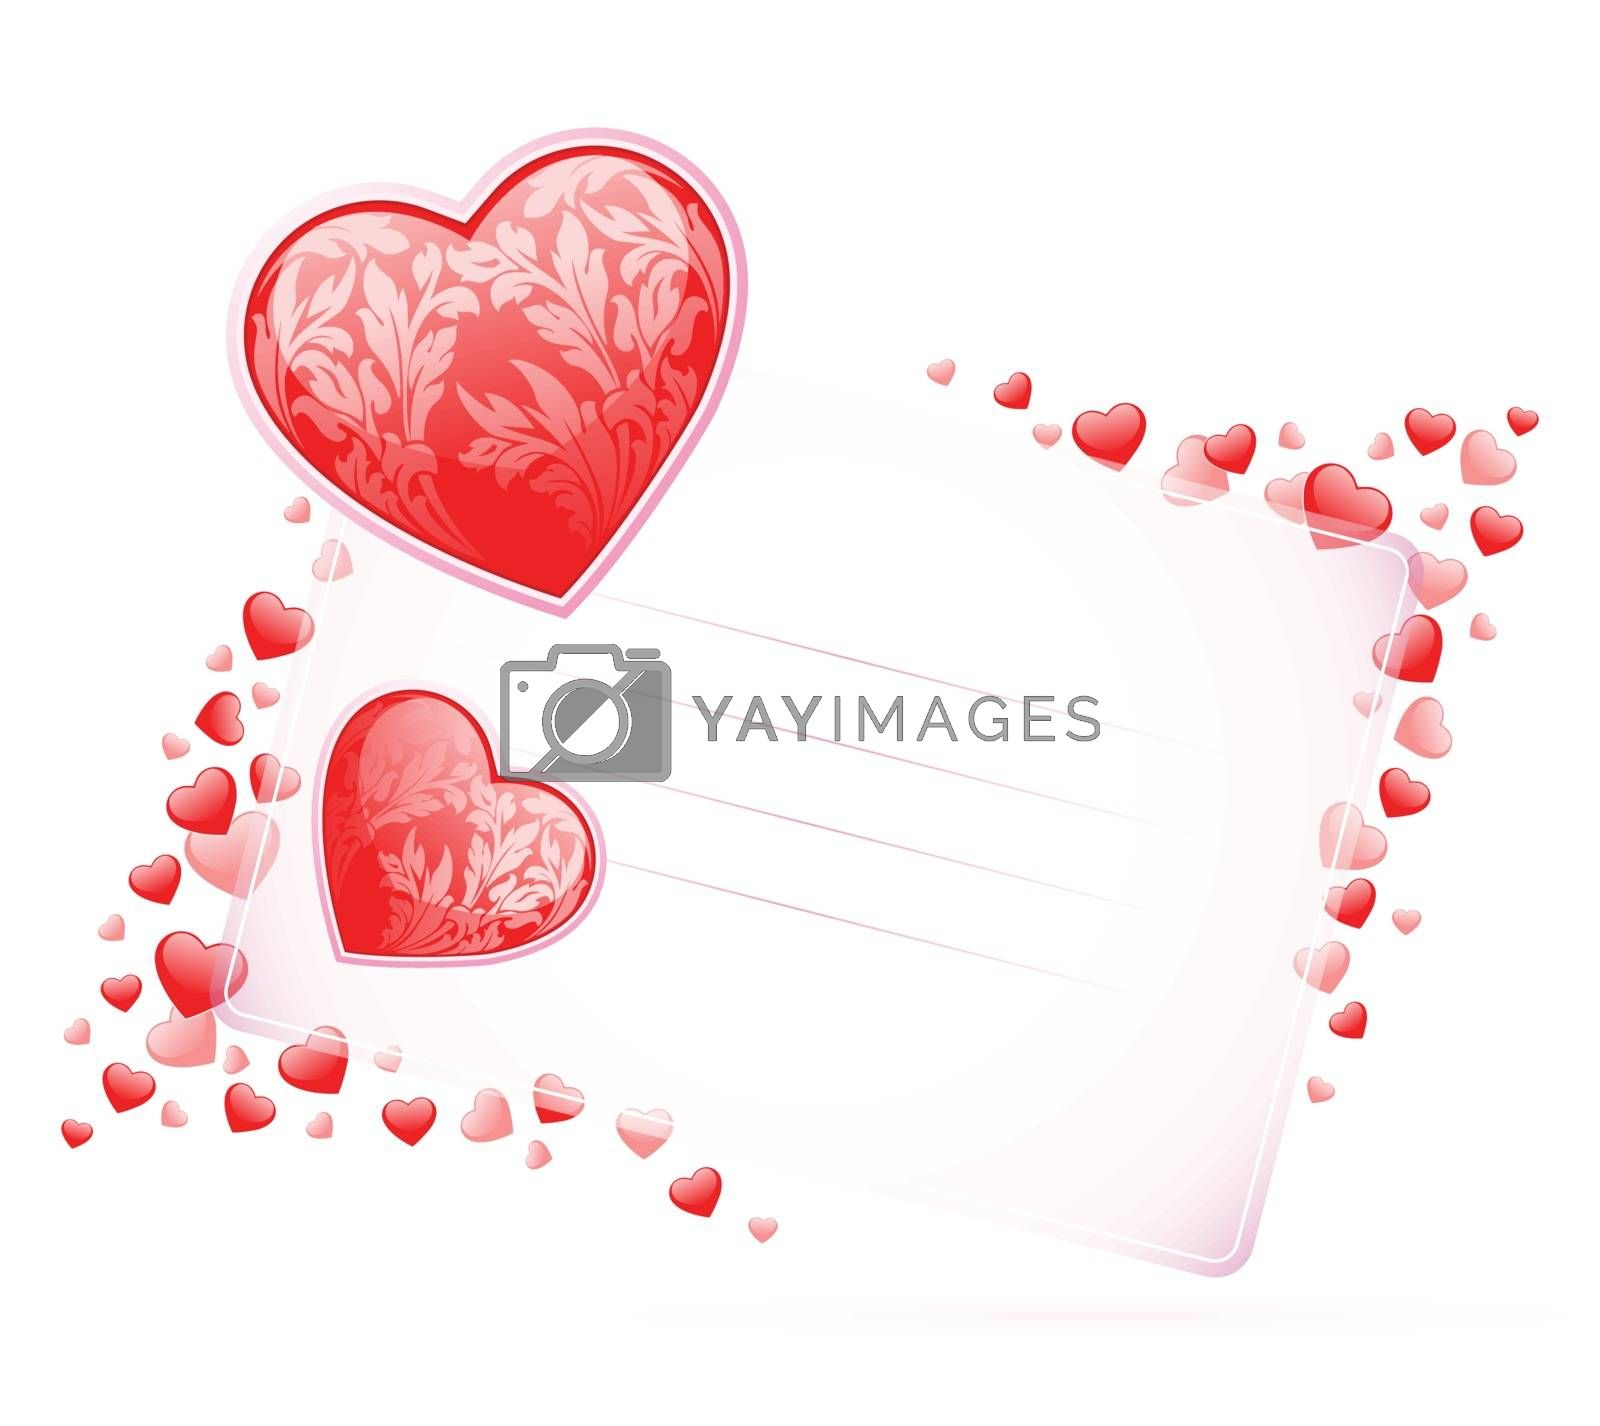 Valentines Day Card with hearts on white background